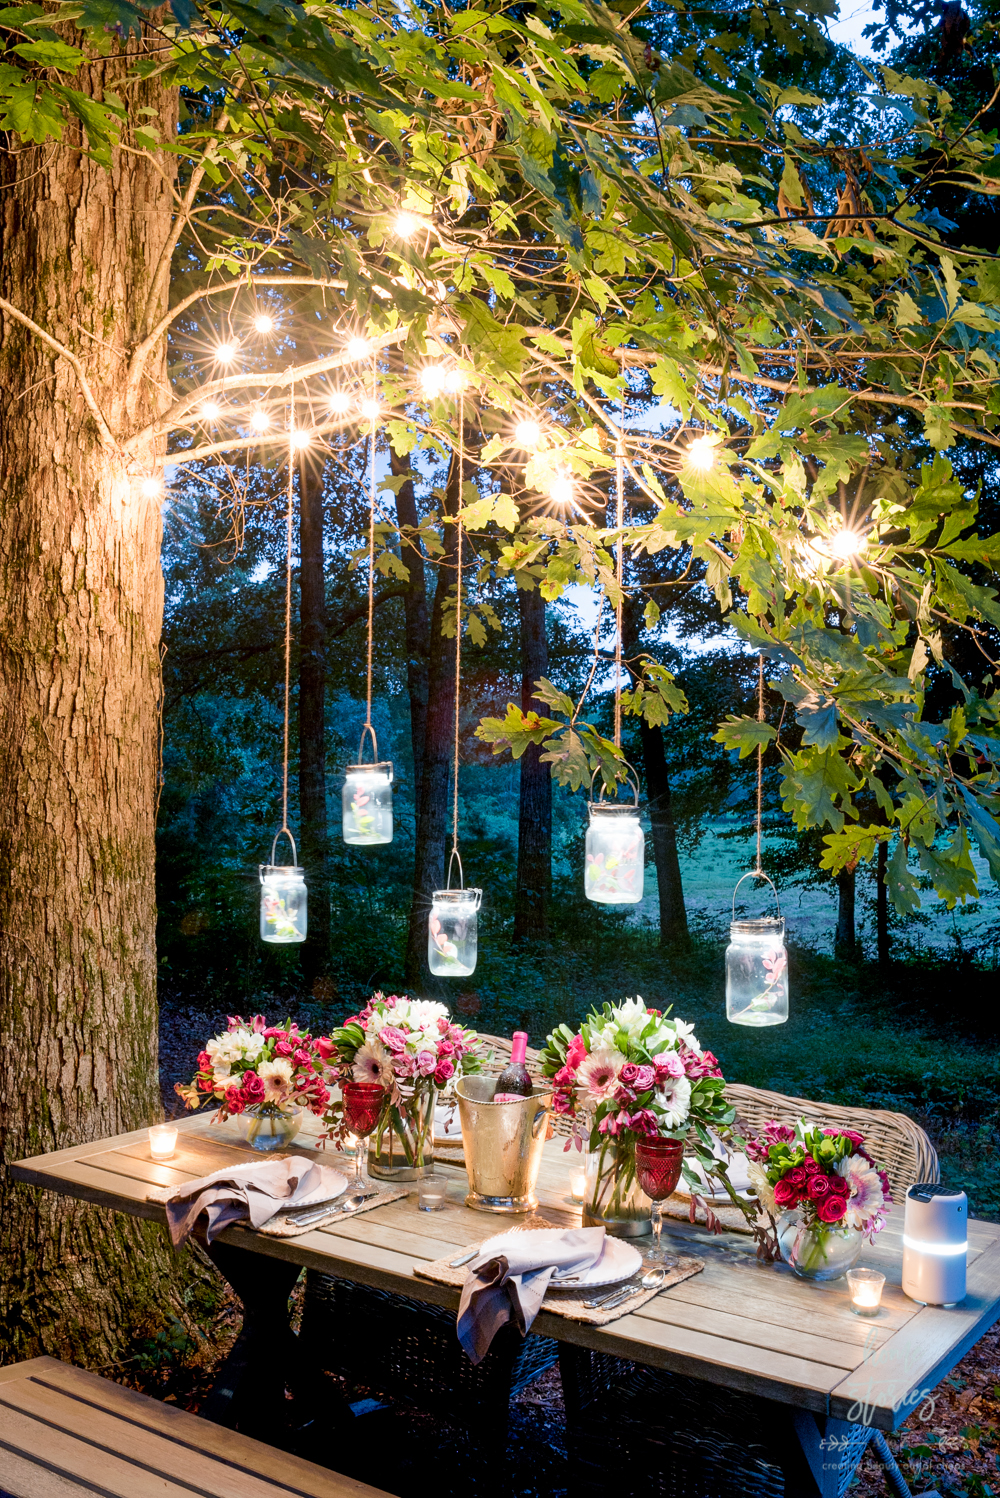 Outdoor Table Setting Tips: Products to Help Create a ... on Backyard Table Decor id=45785